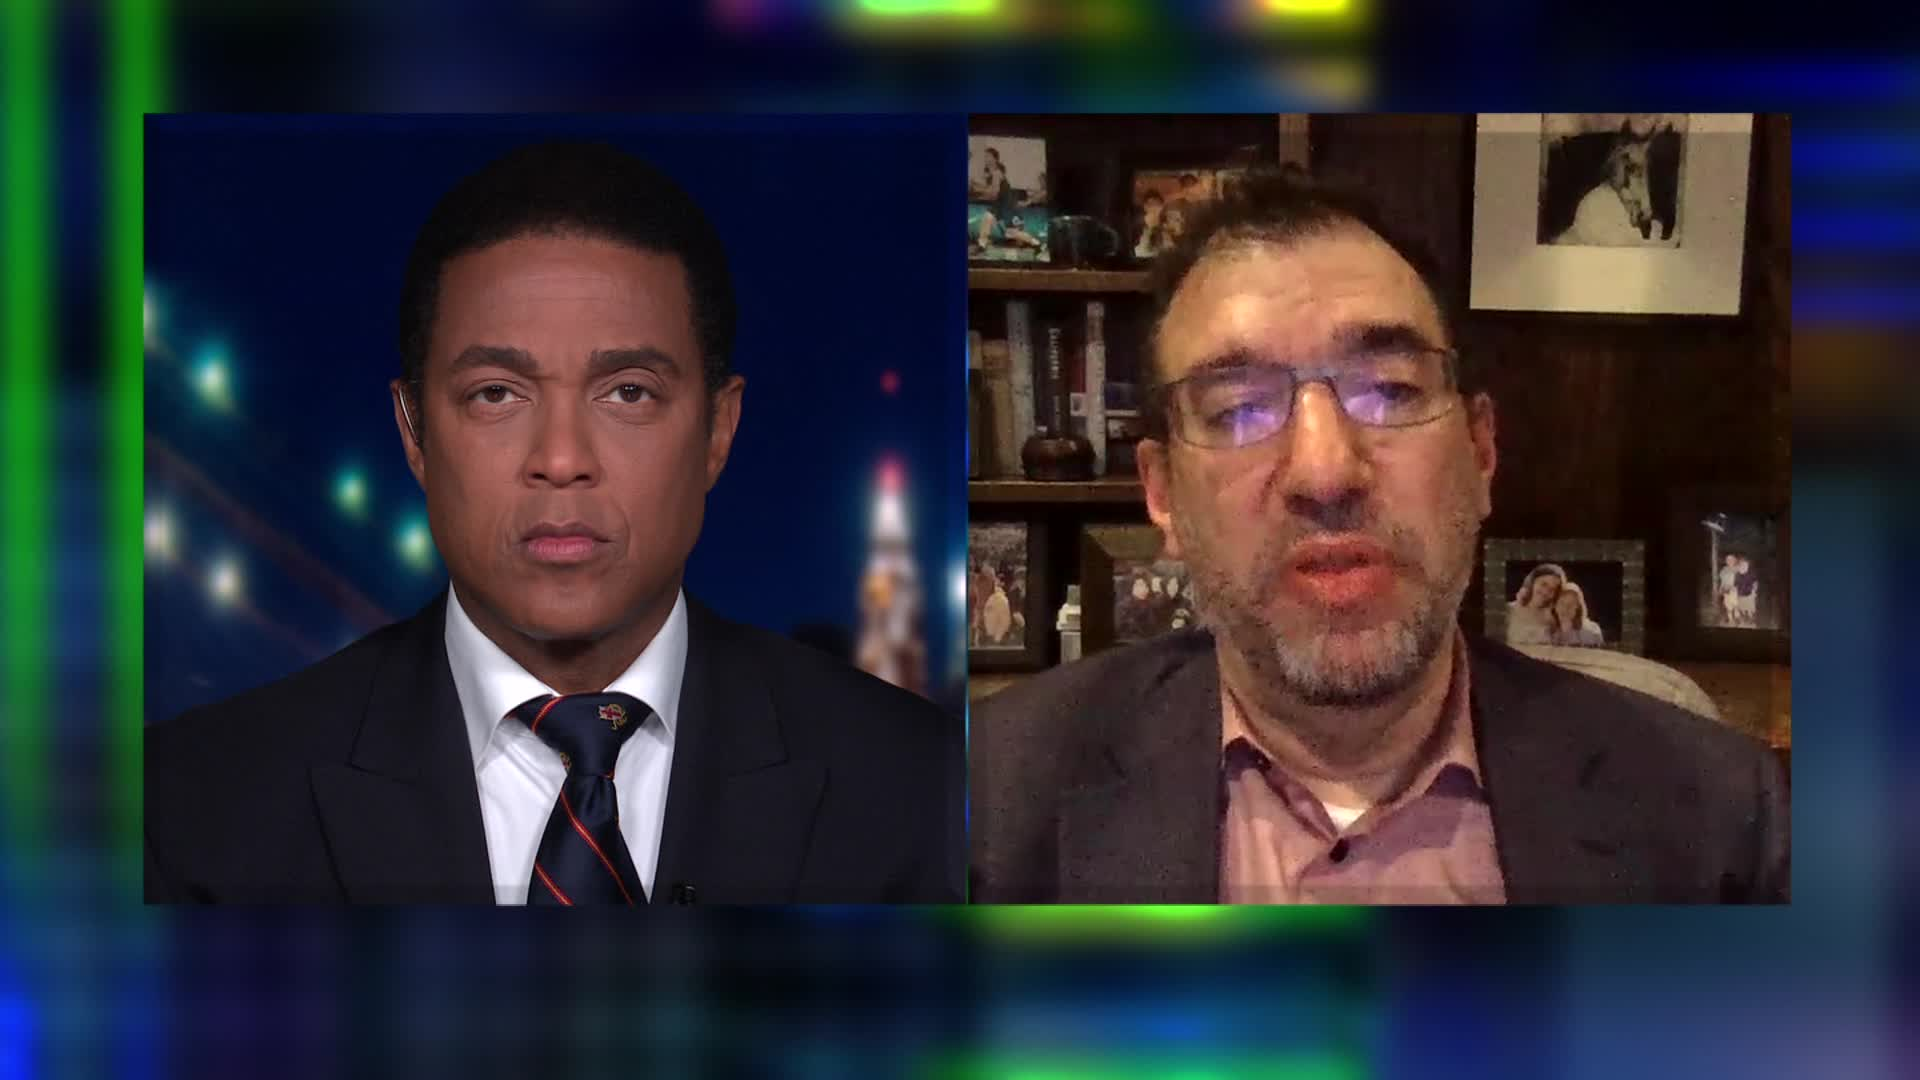 CNN's Don Lemon (left) and Andy Slavitt, former acting director of the Centers for Medicare and Medicaid Services.